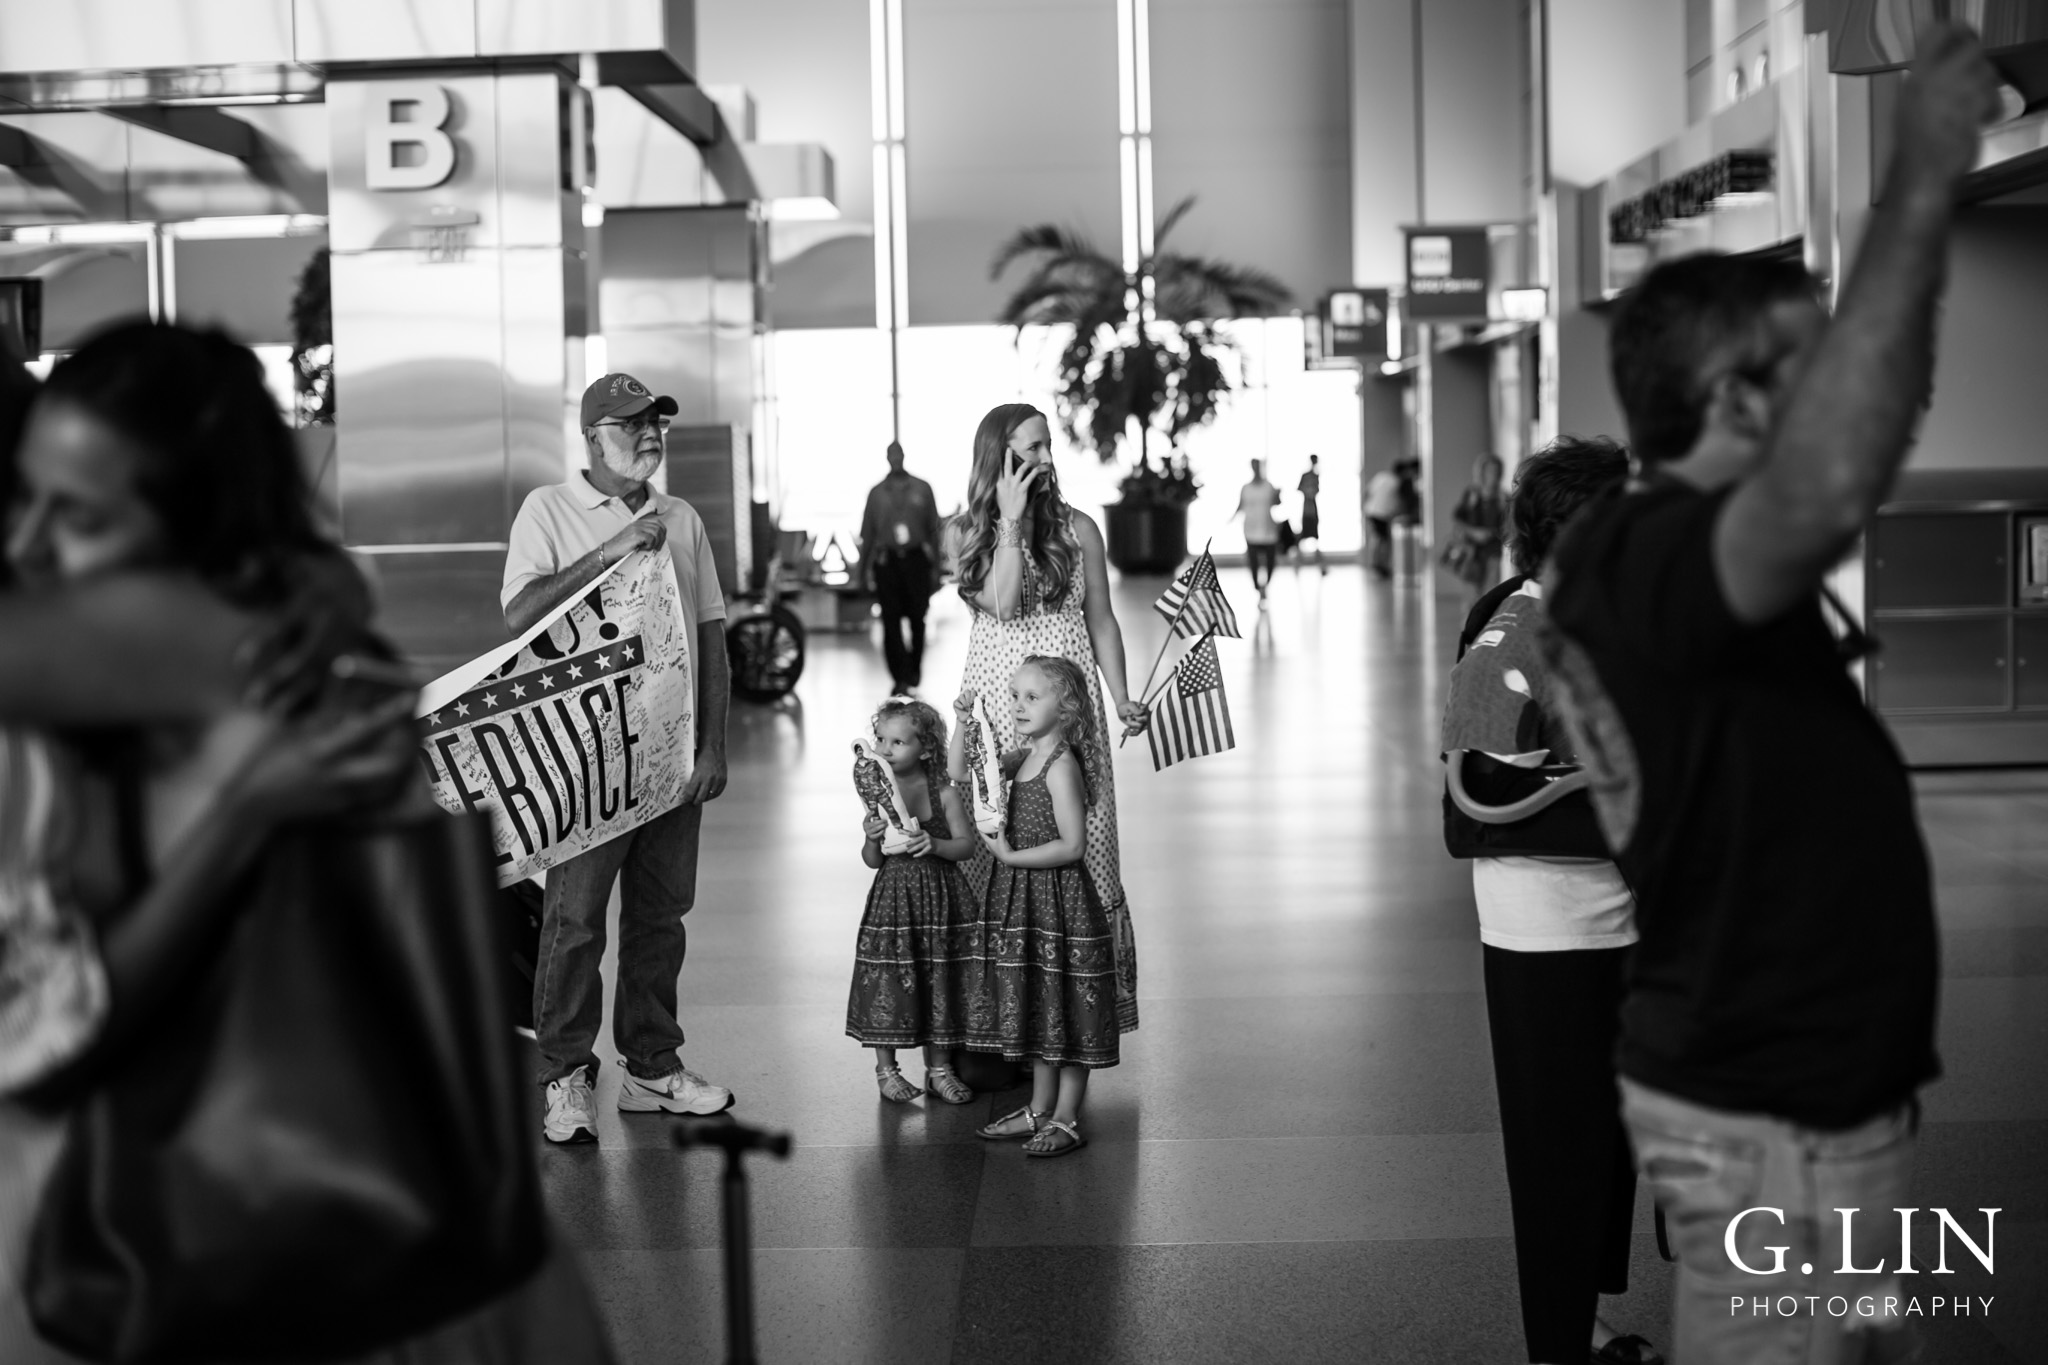 Raleigh Family Photographer | G. Lin Photography | wife on the phone waiting for husband at airport